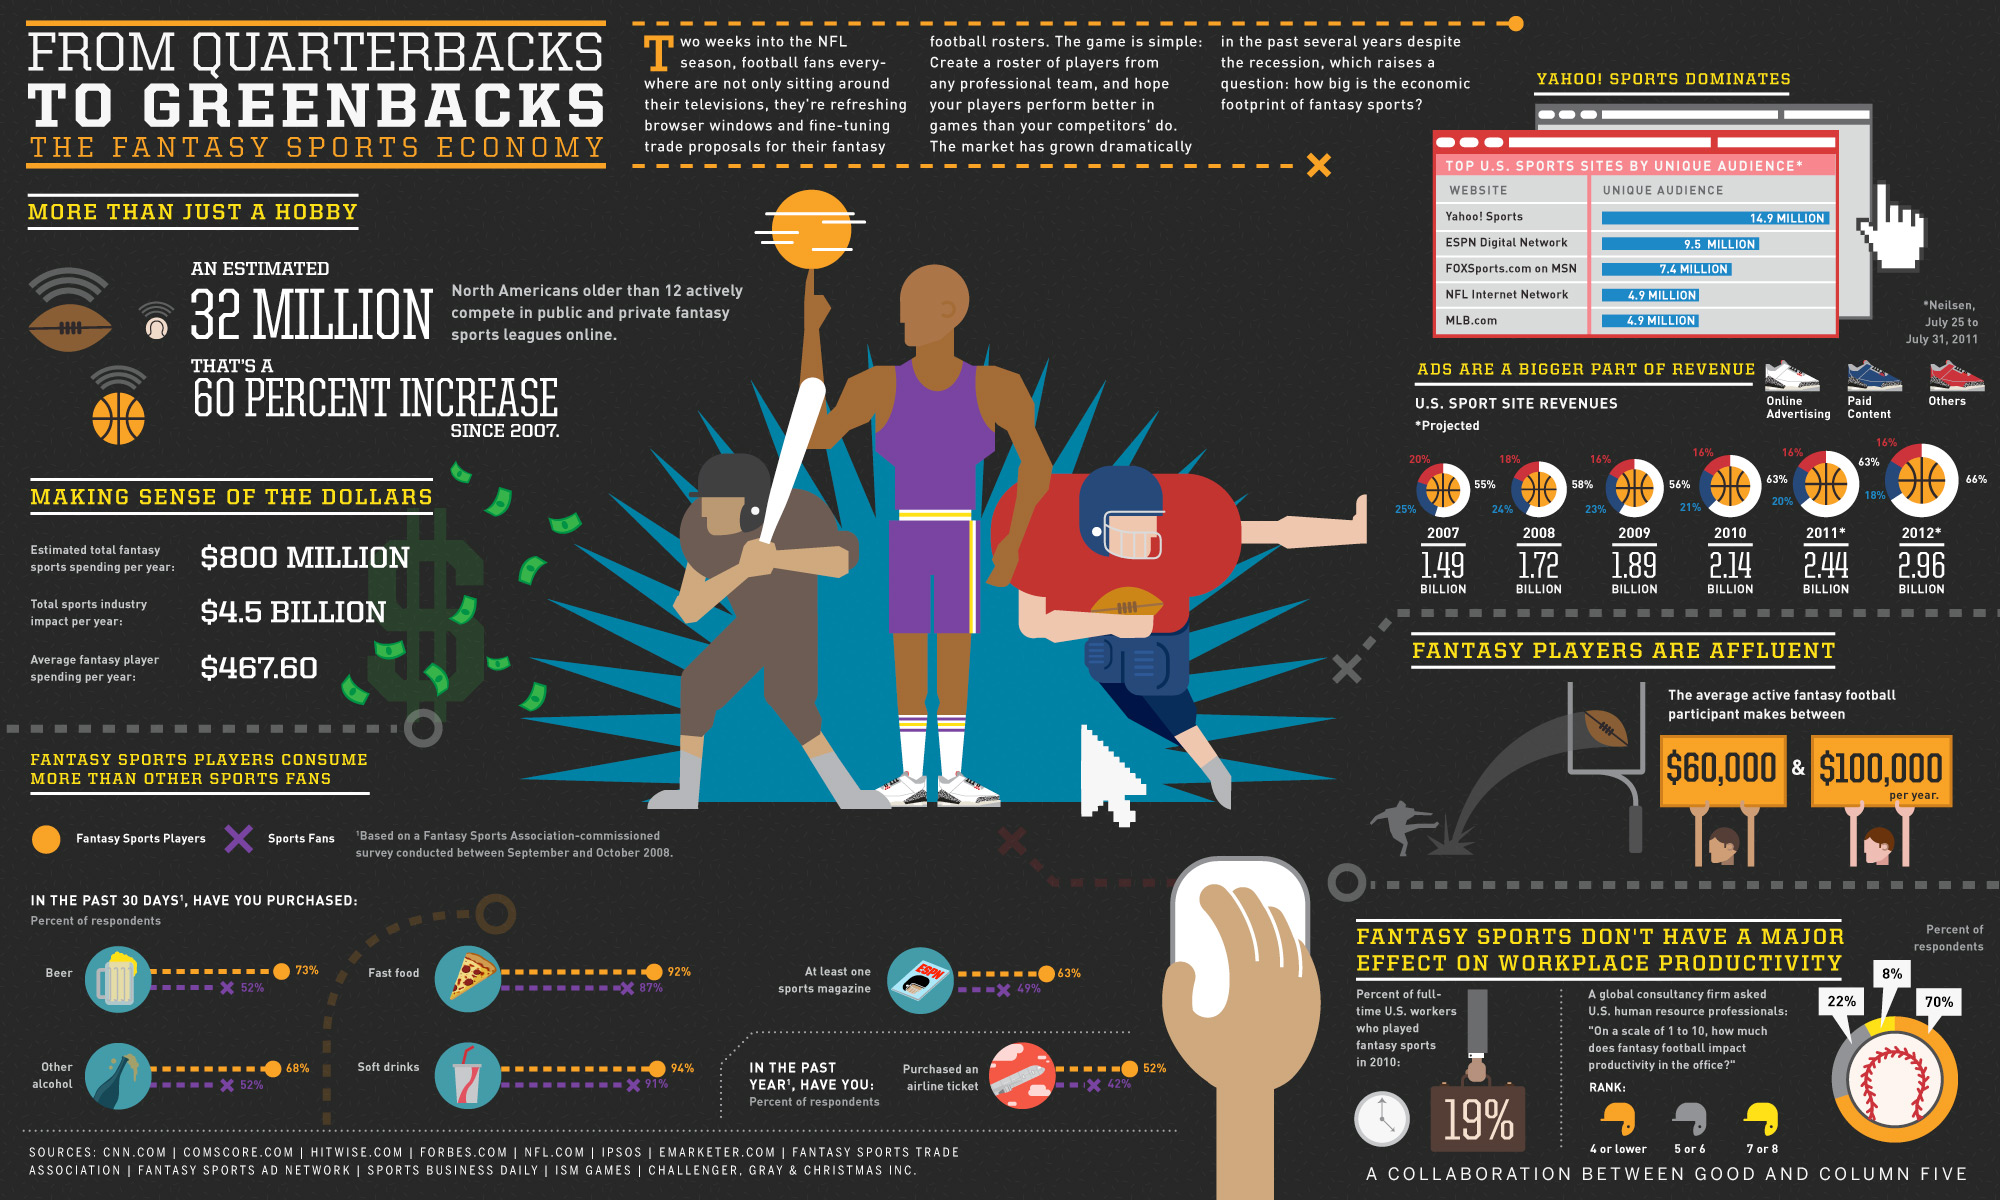 Infographic: The Fantasy Sports Economy